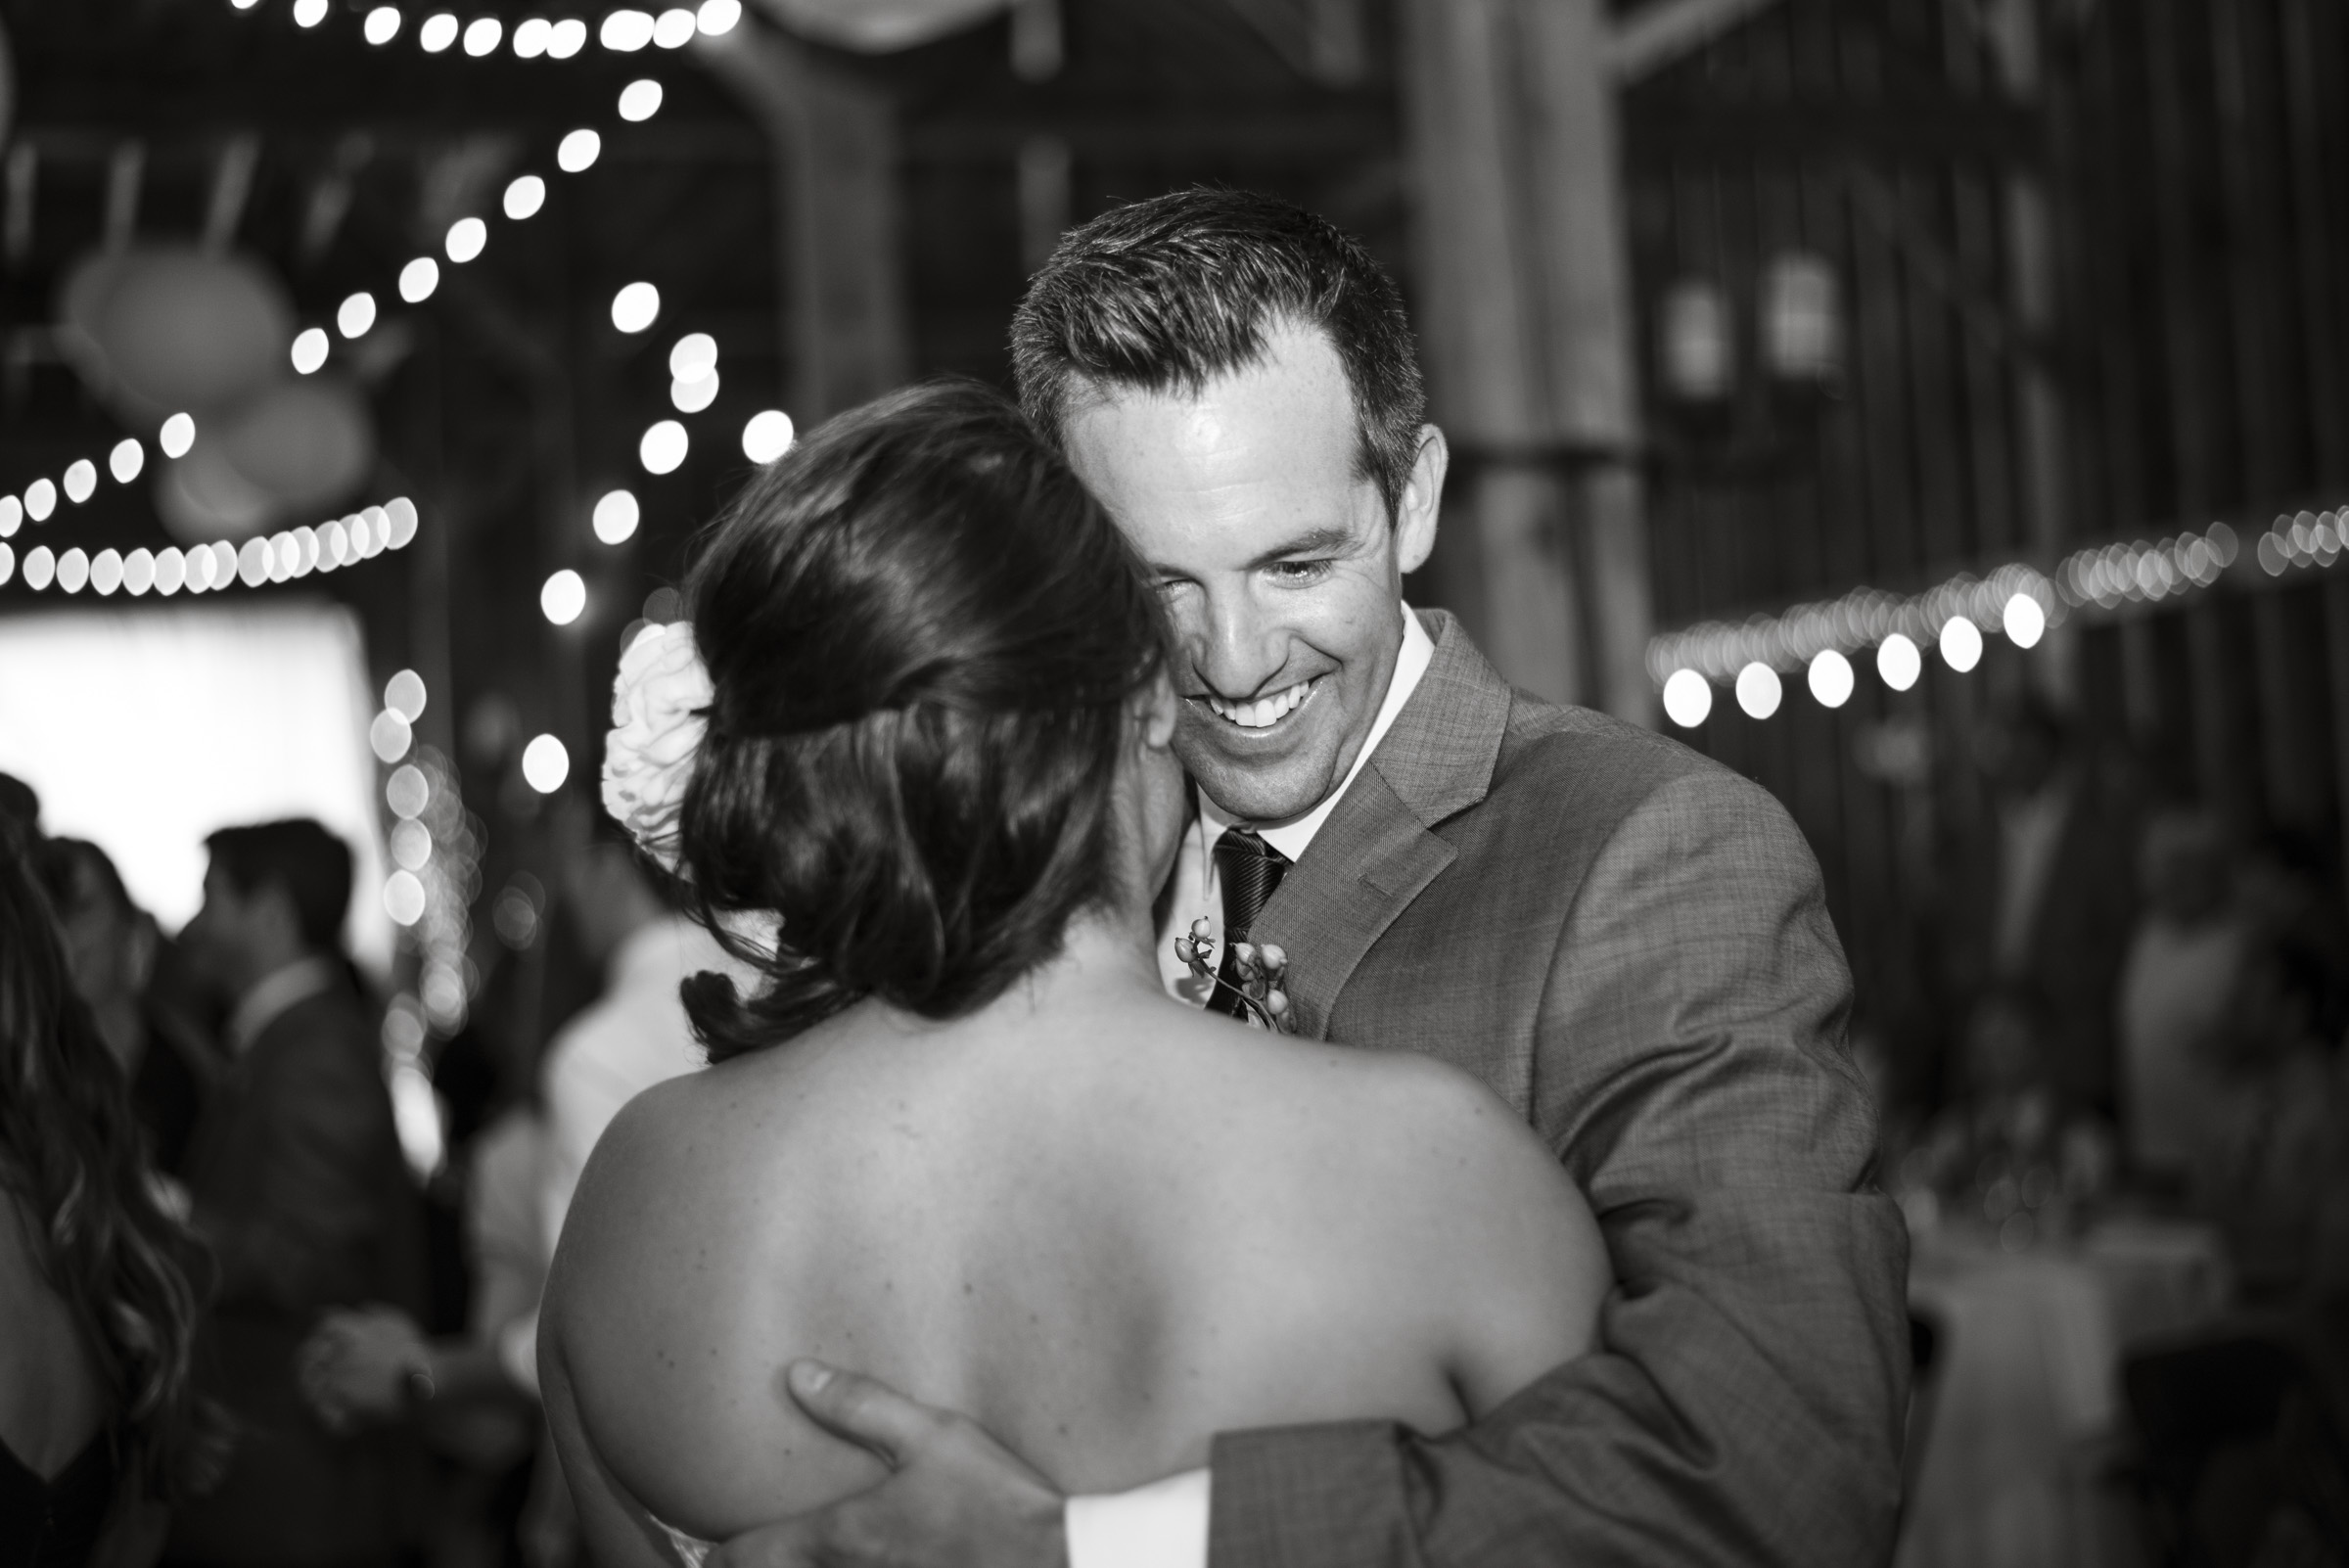 08232014-Chris&VanessaWedding-JuliaLuckettPhotography-354